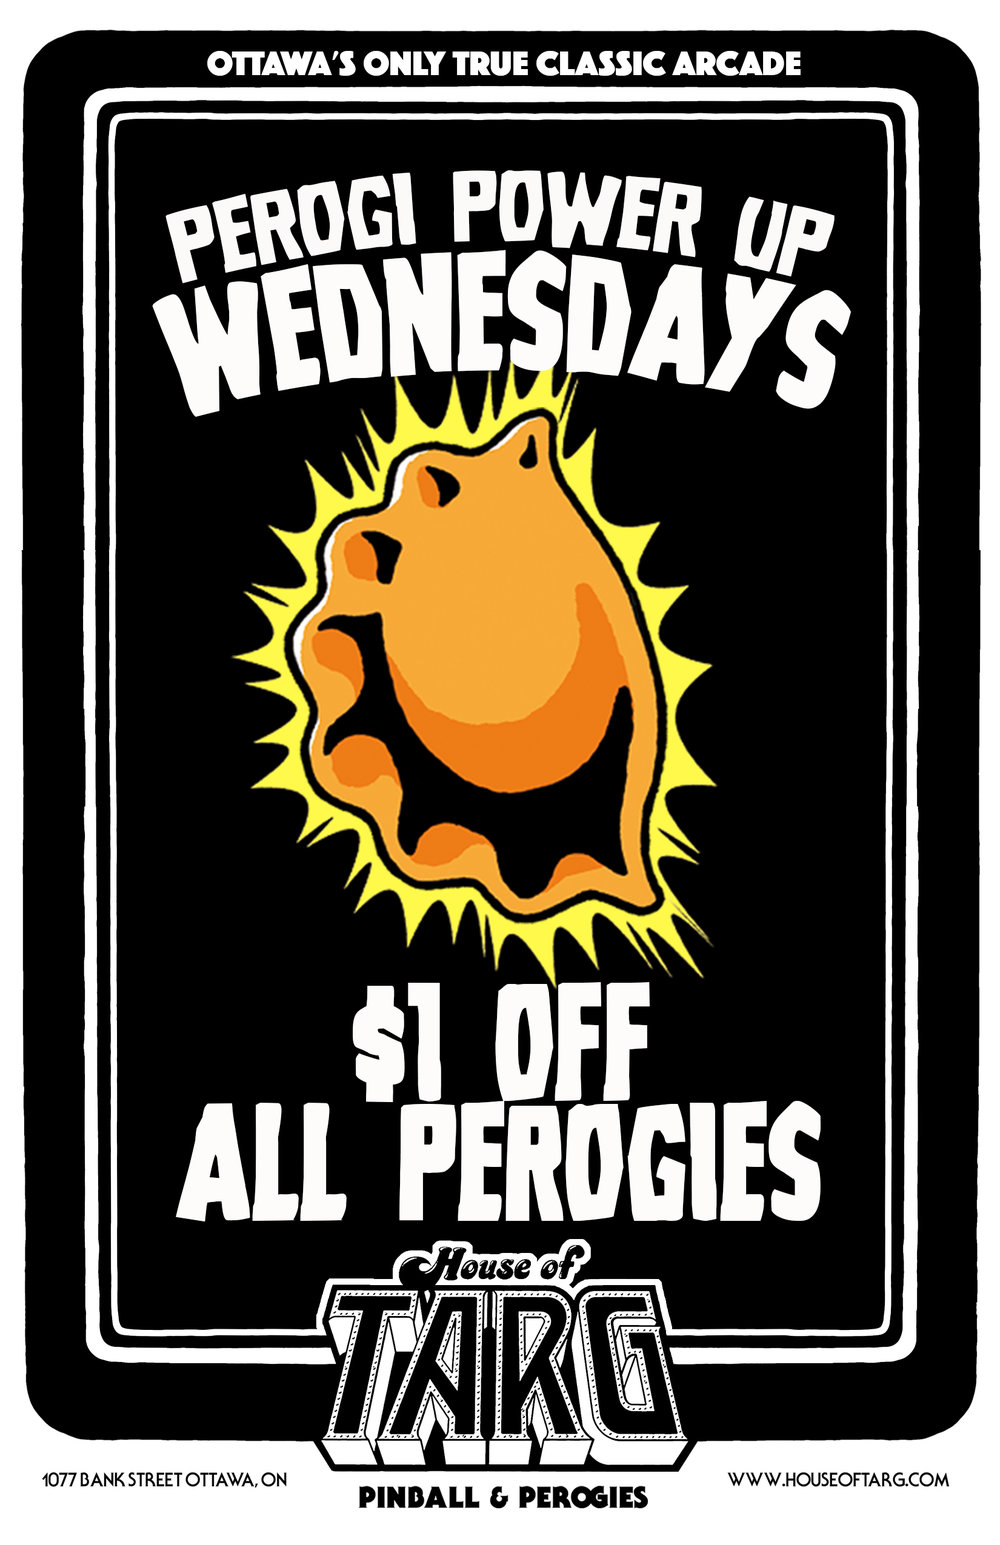 $1 Off Perogies Every Wednesday Starting at 5pm.